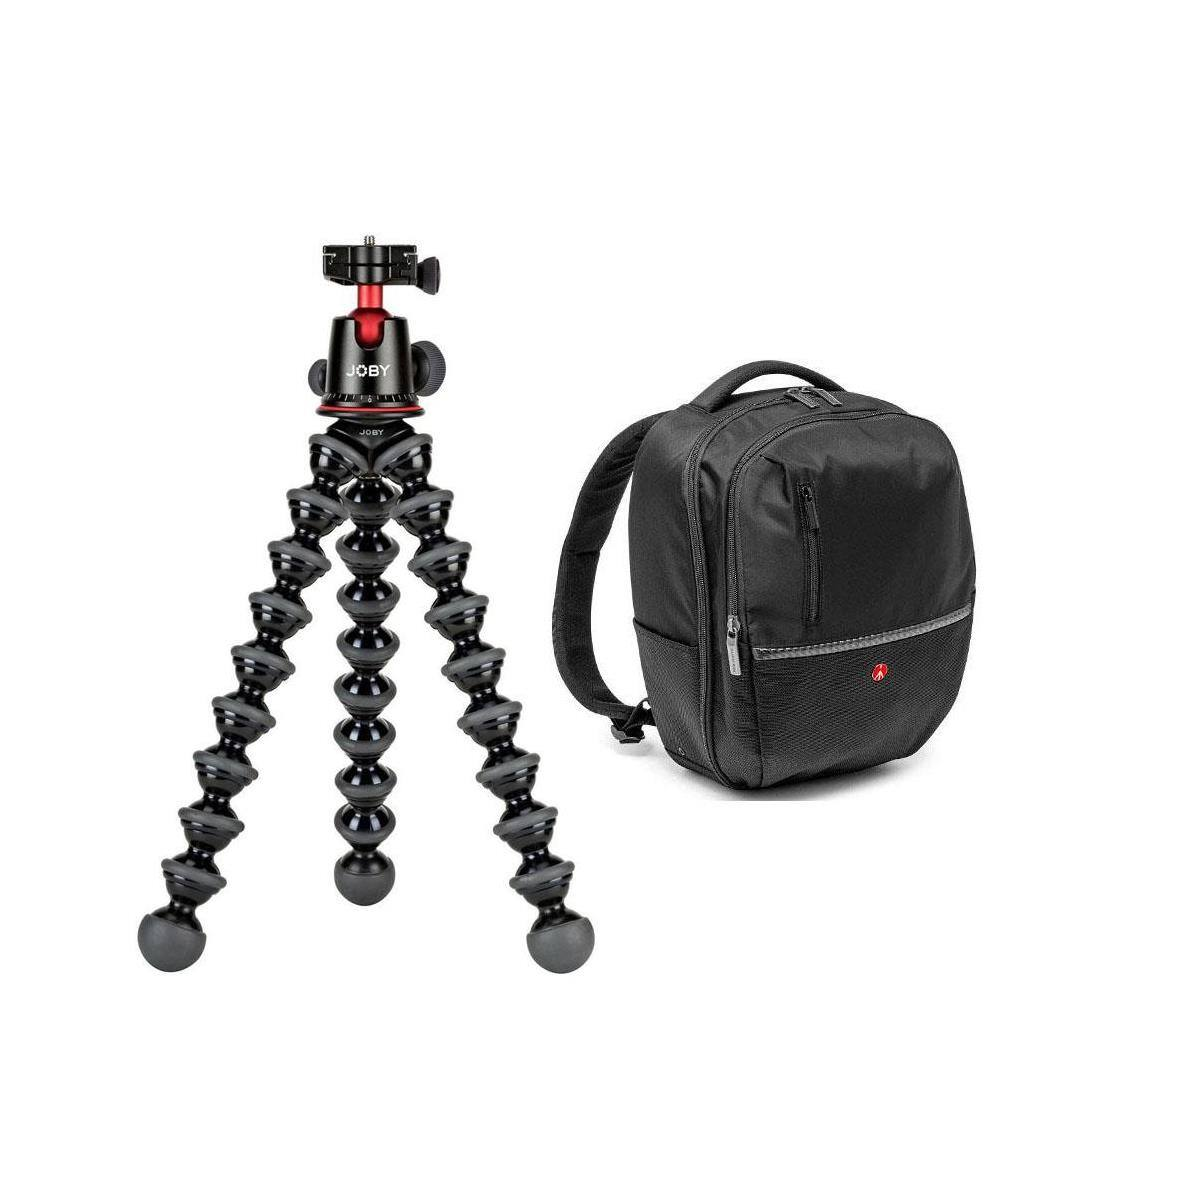 Joby GorillaPod 5K + Manfrotto Advanced Gear Backpack $130 + free s/h